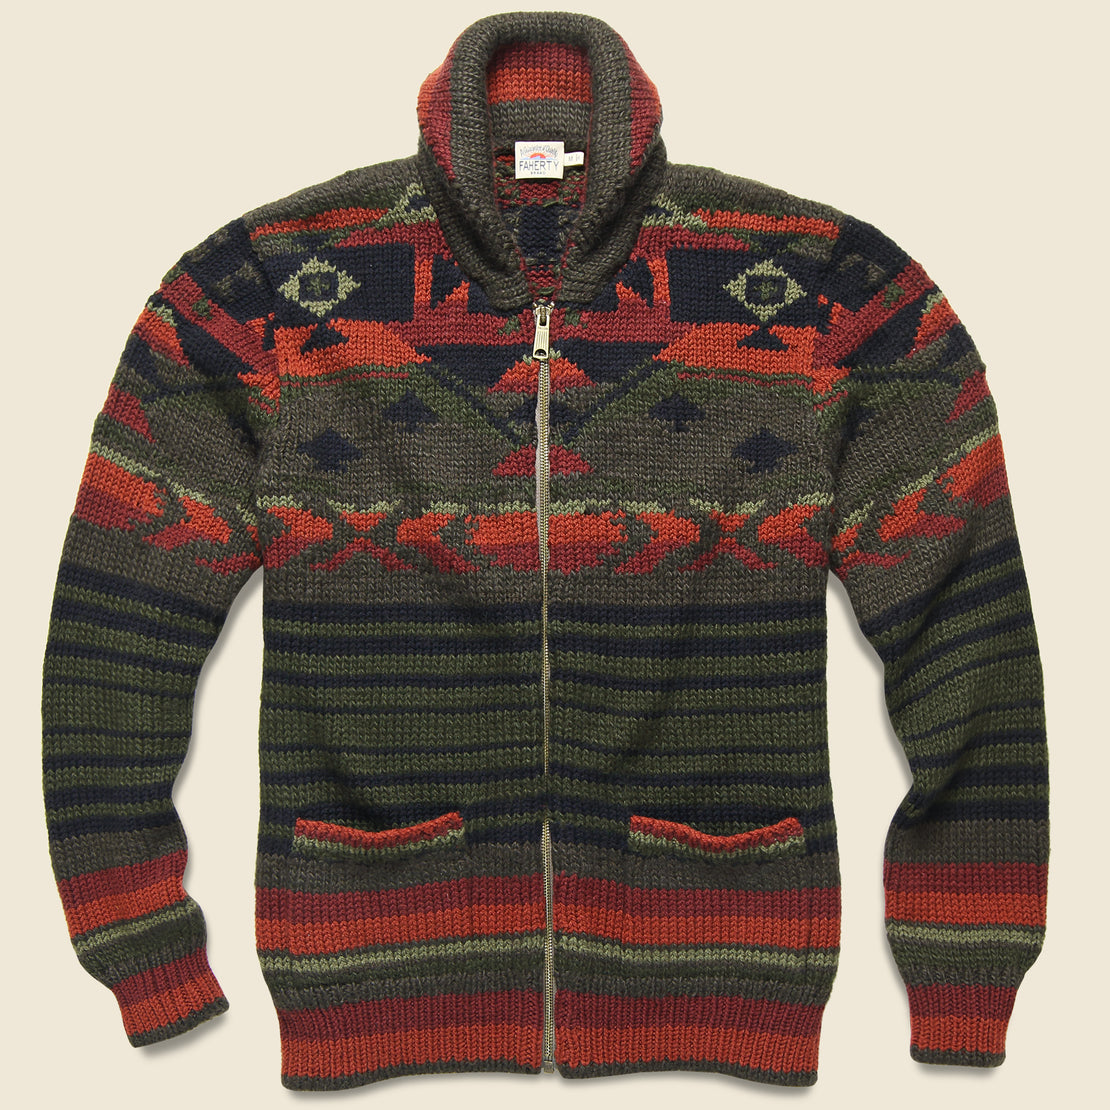 Faherty Winter Woods Cardigan - Green/Brown/Orange